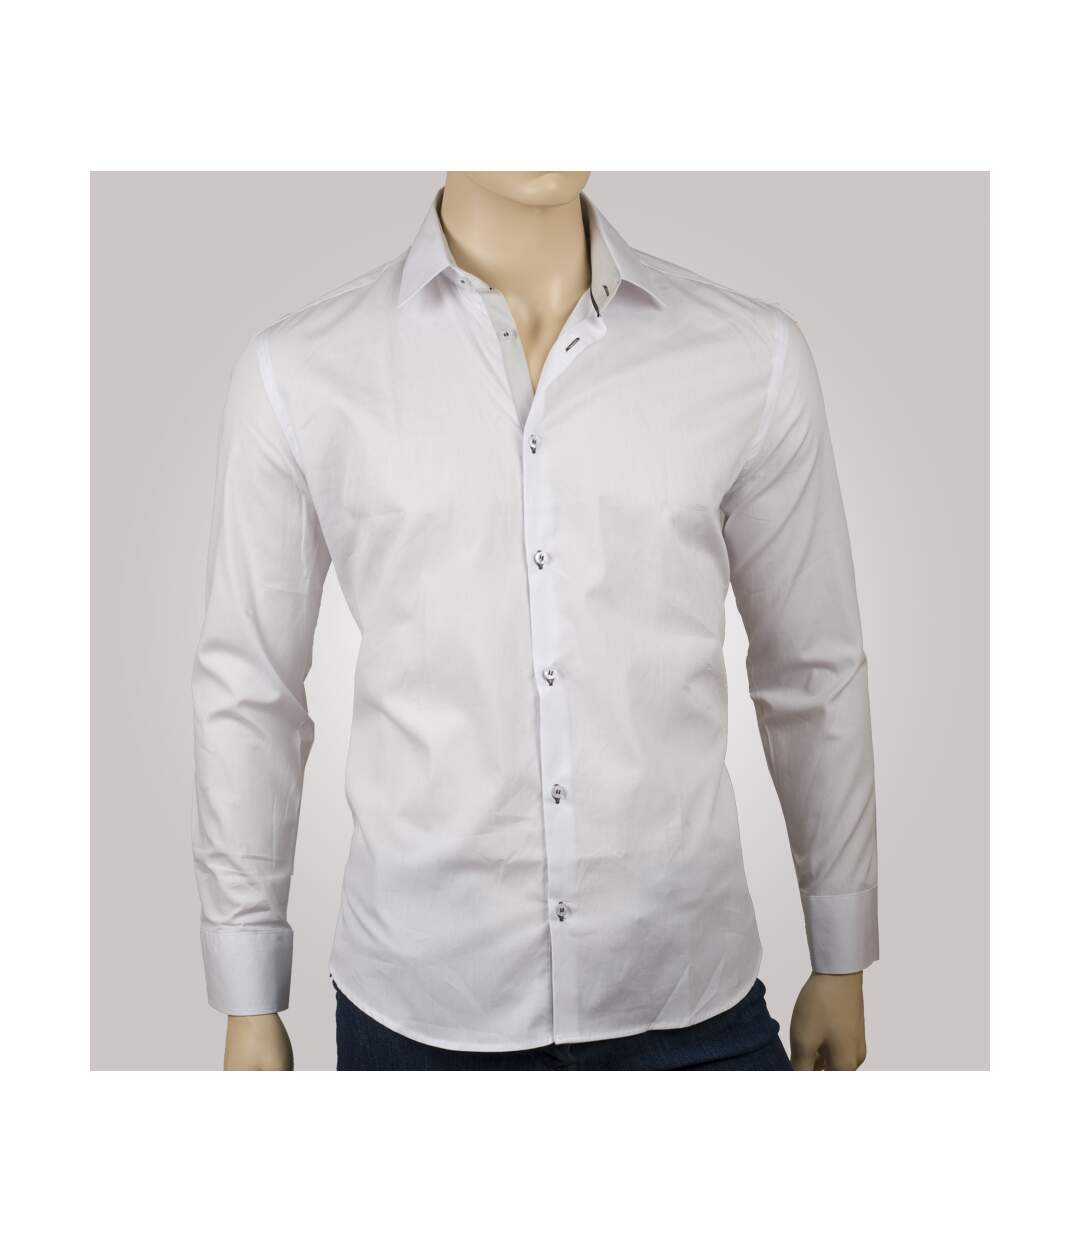 Chemise homme blanche trio gris clair & anthracite - Chemise CINTREE